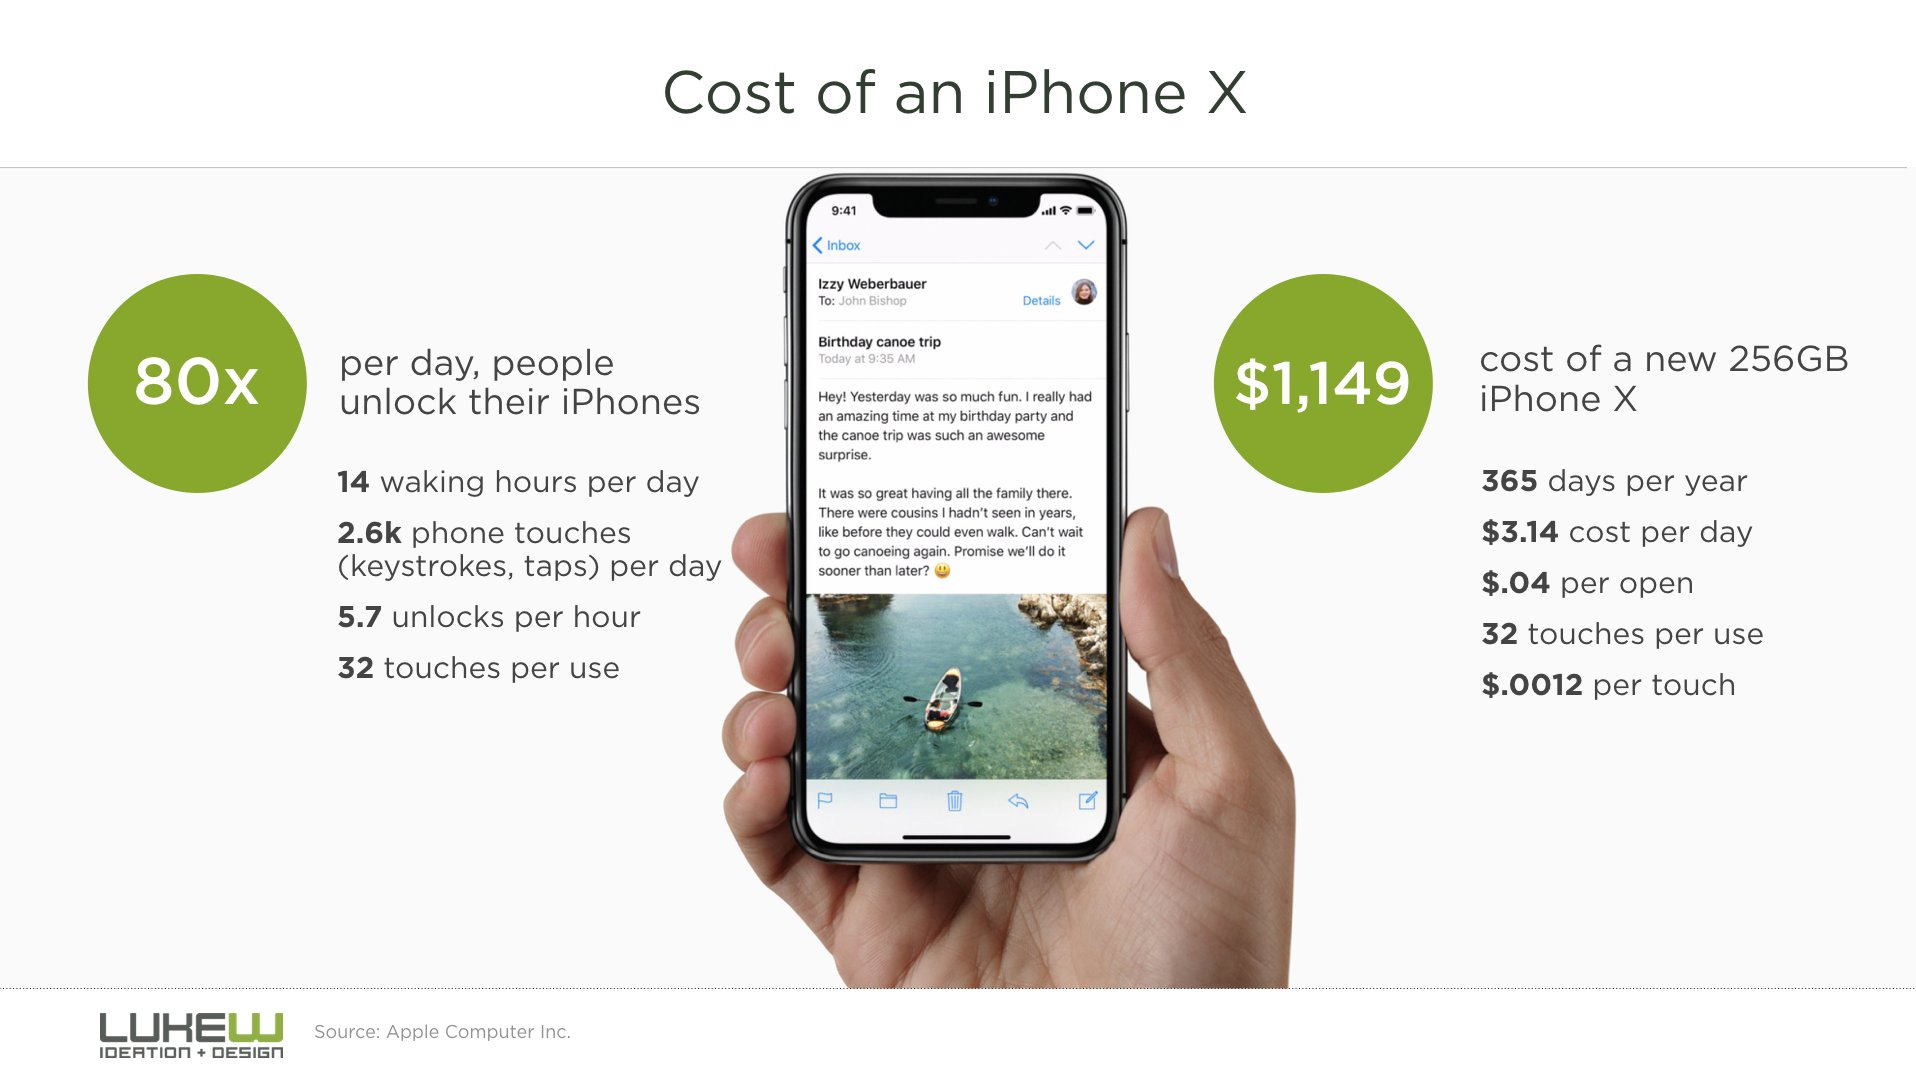 iPhone x cost 1